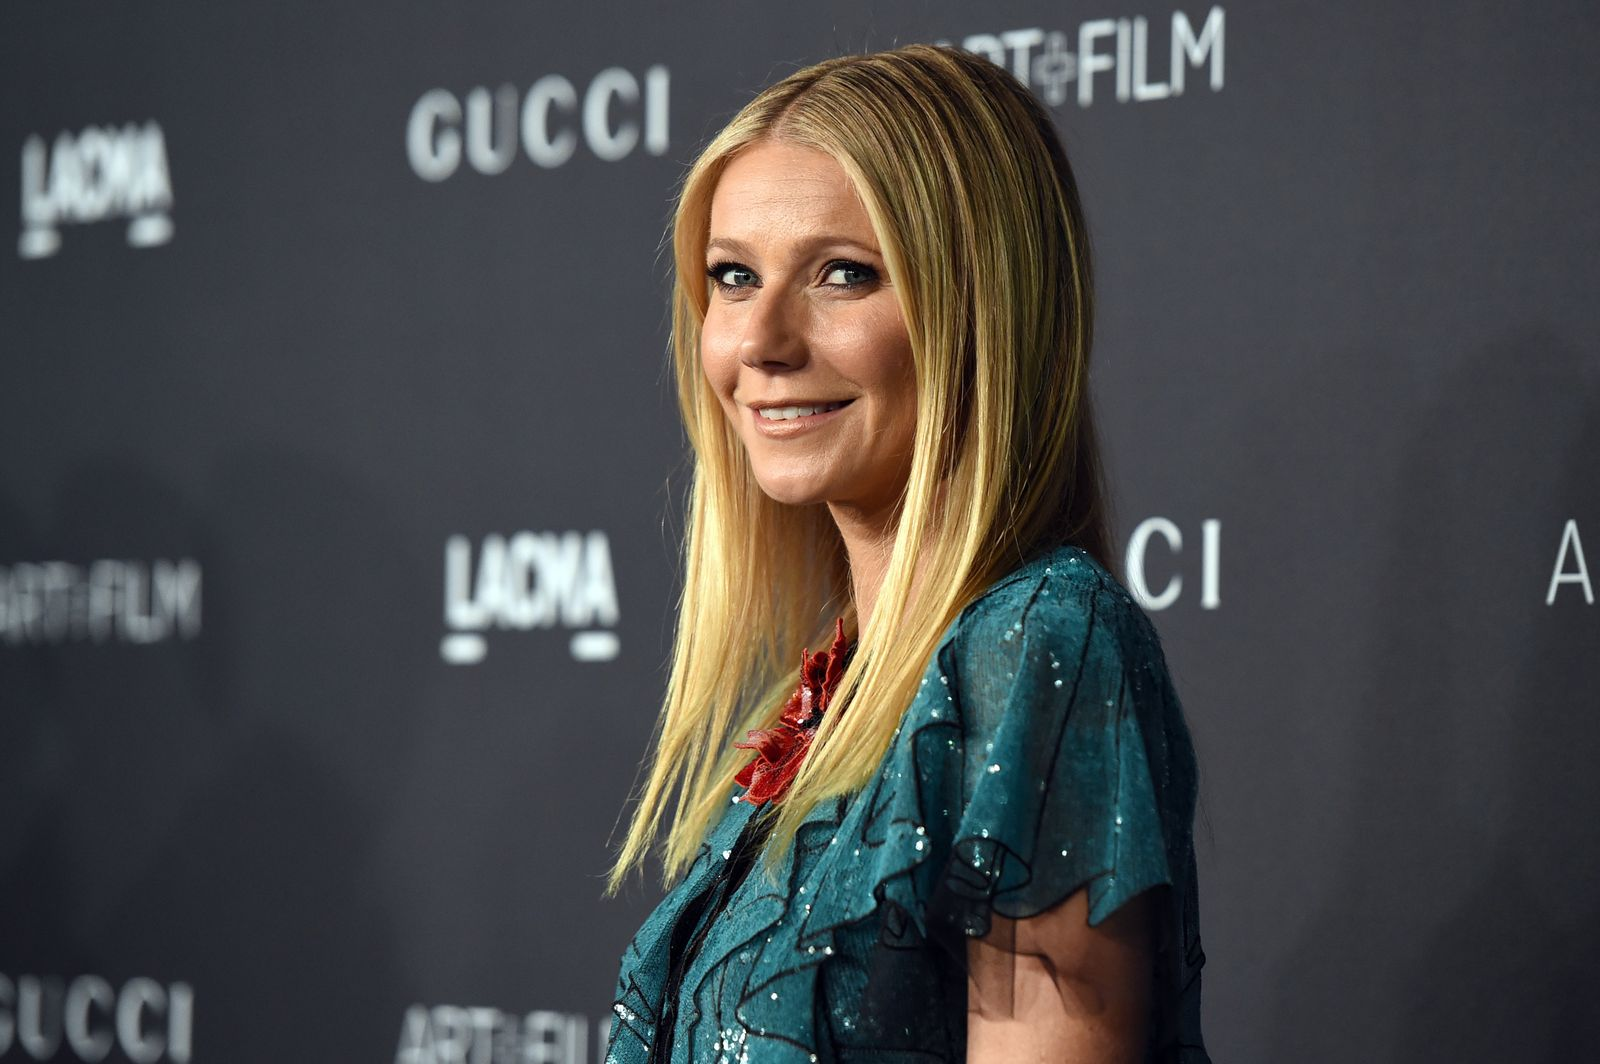 Gwyneth Paltrow attending a red carpet event/Photo:Getty Images